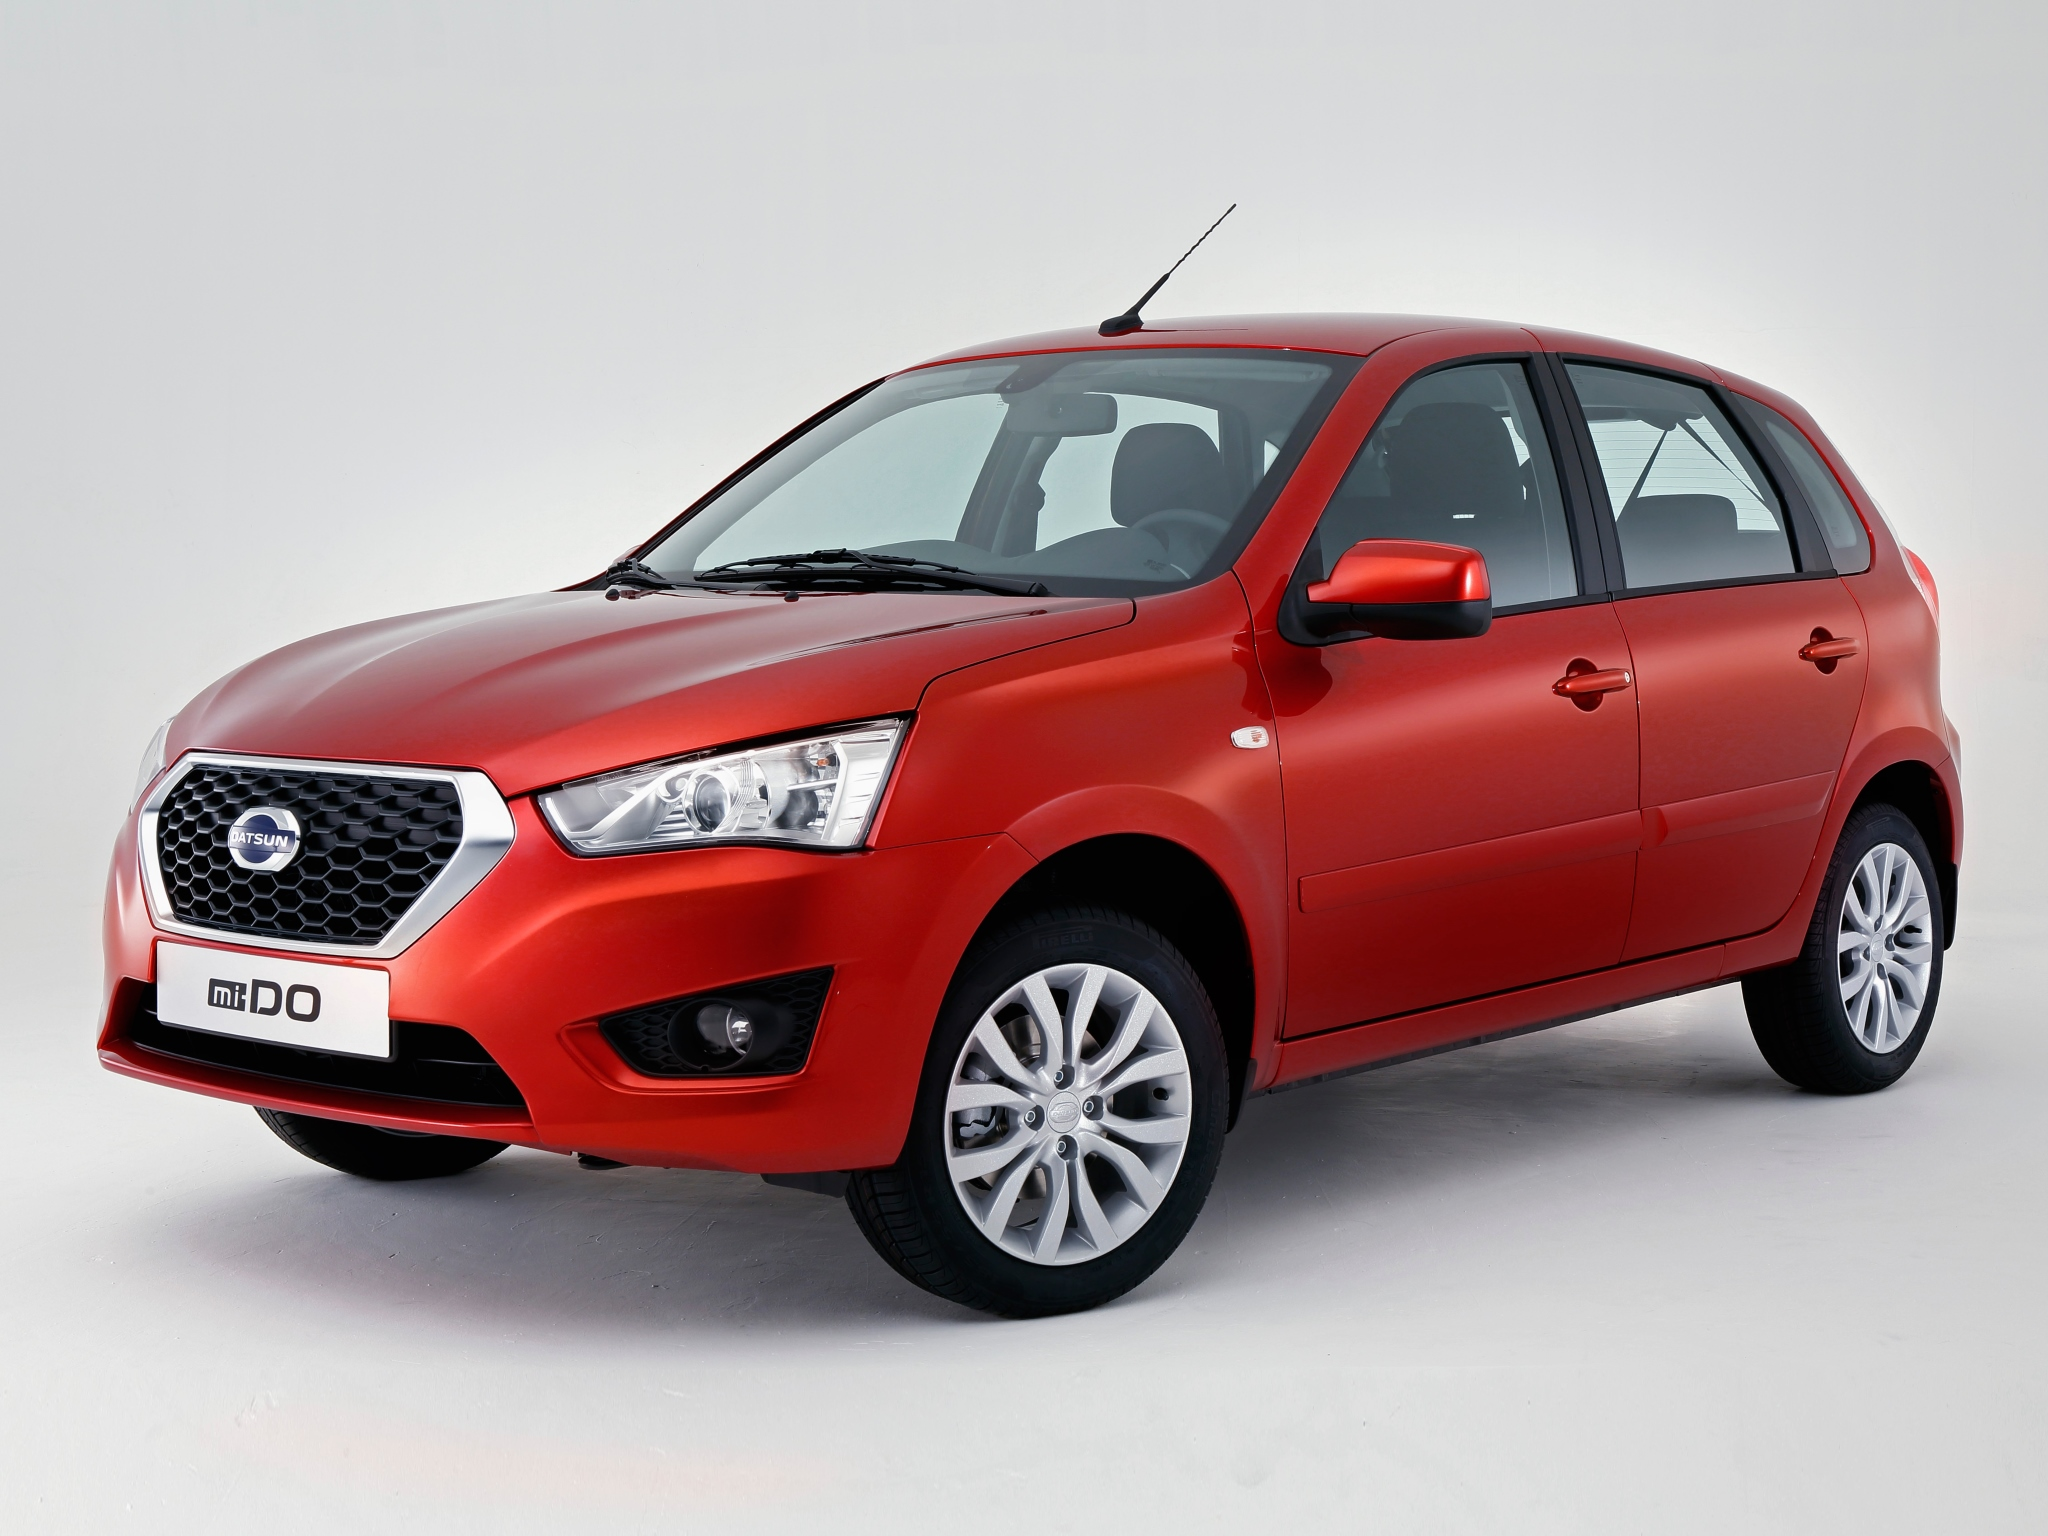 2014 - [Datsun] mi-DO - Page 2 Datsun-reveals-mi-do-hatchback-in-russia-based-on-lada-kalina-video-photo-gallery_2